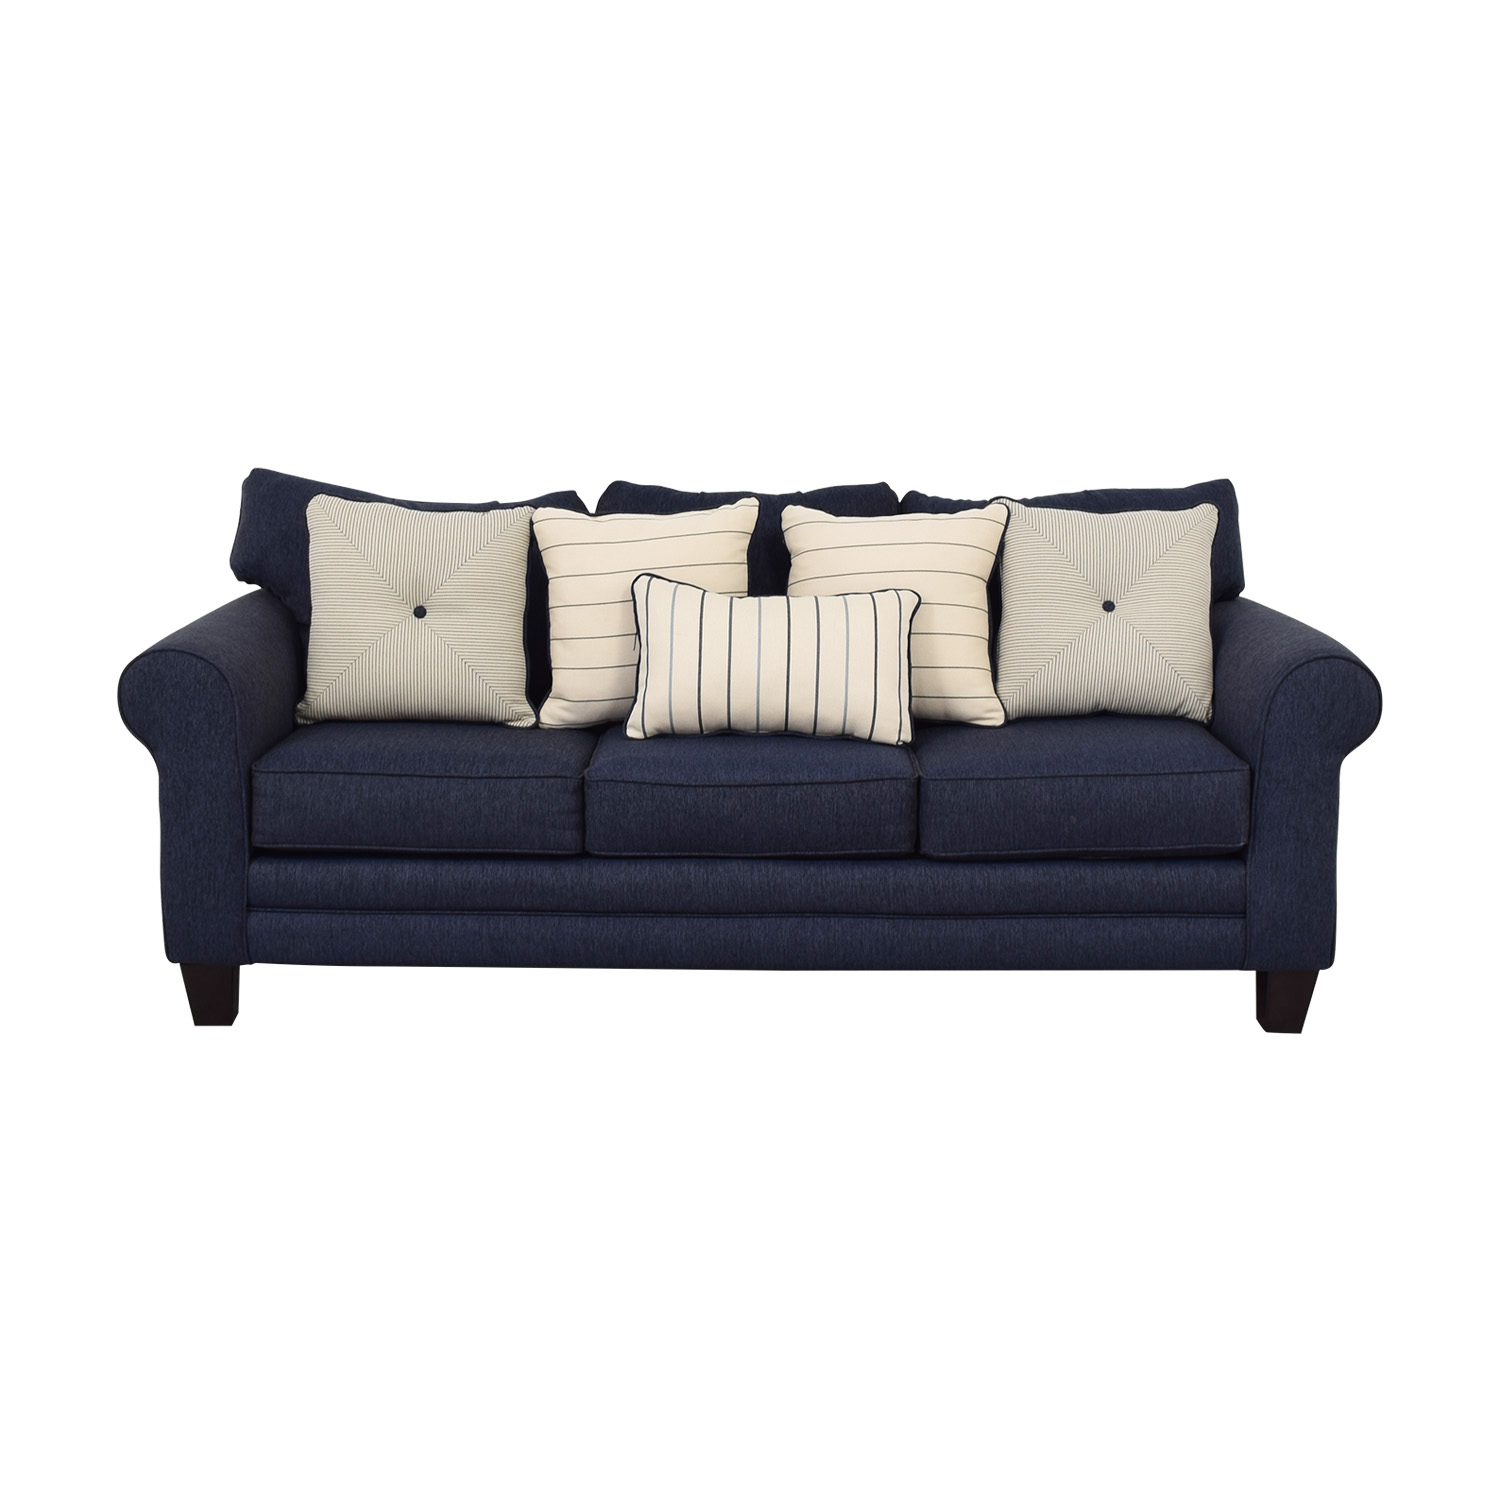 Raymour & Flanigan Raymour & Flanigan Navy Three-Cushion Sofa coupon